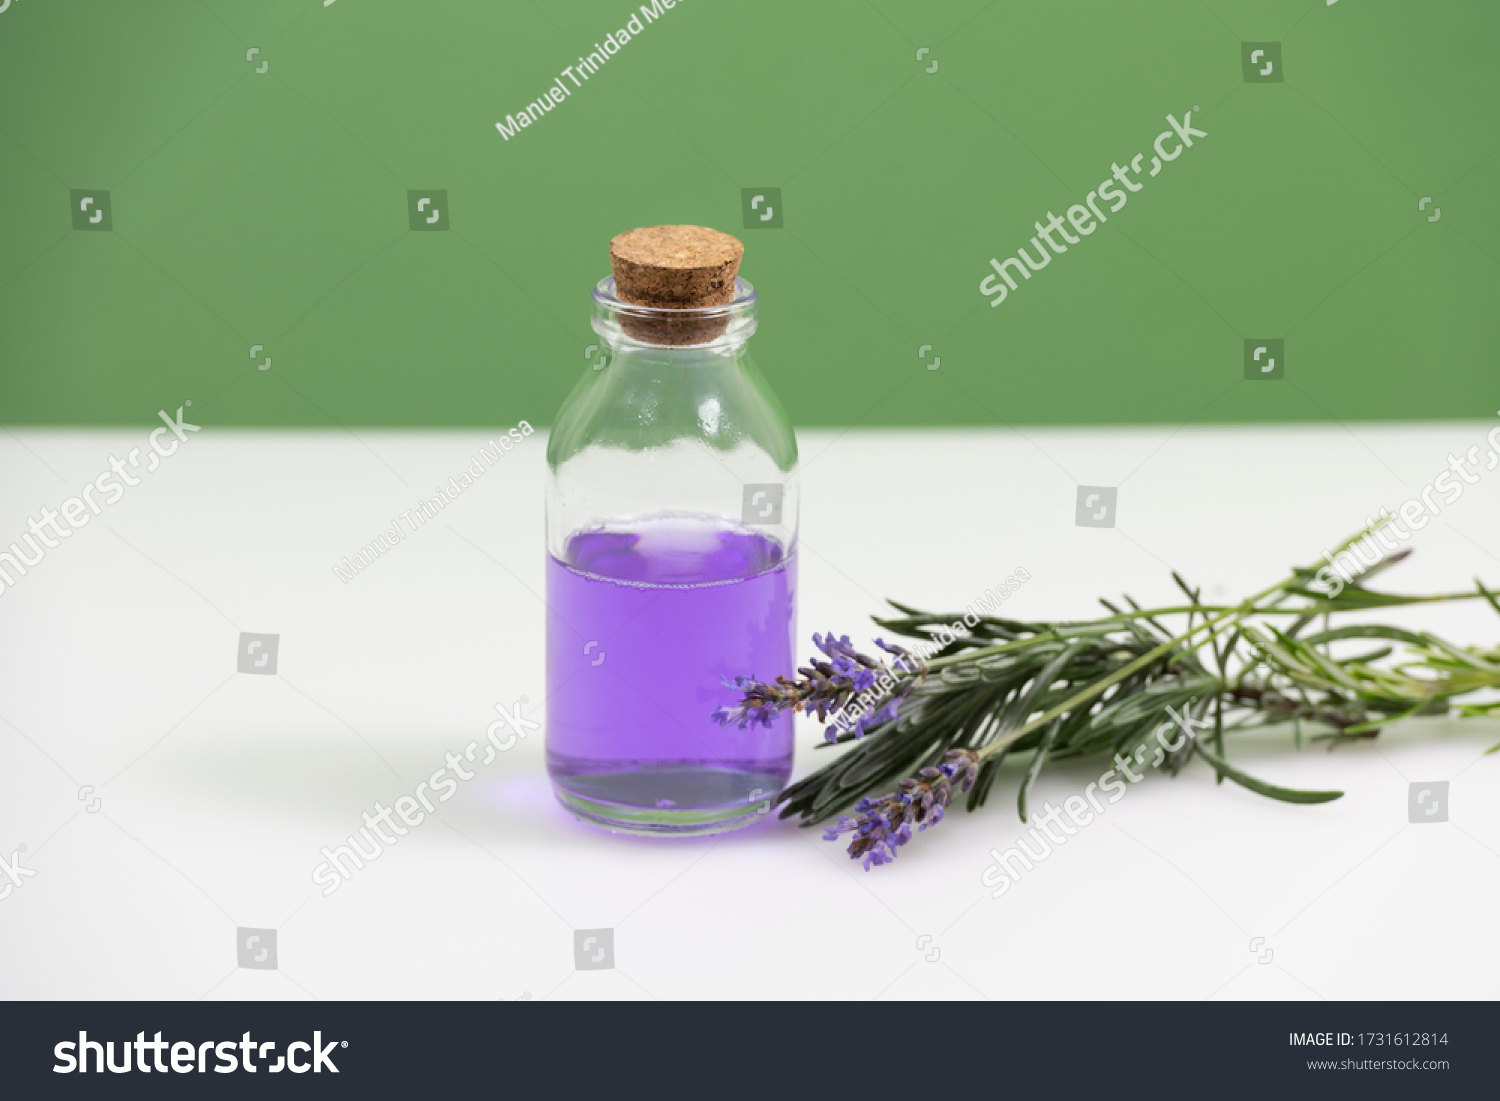 Glass jar with essential oil and lavender flowers